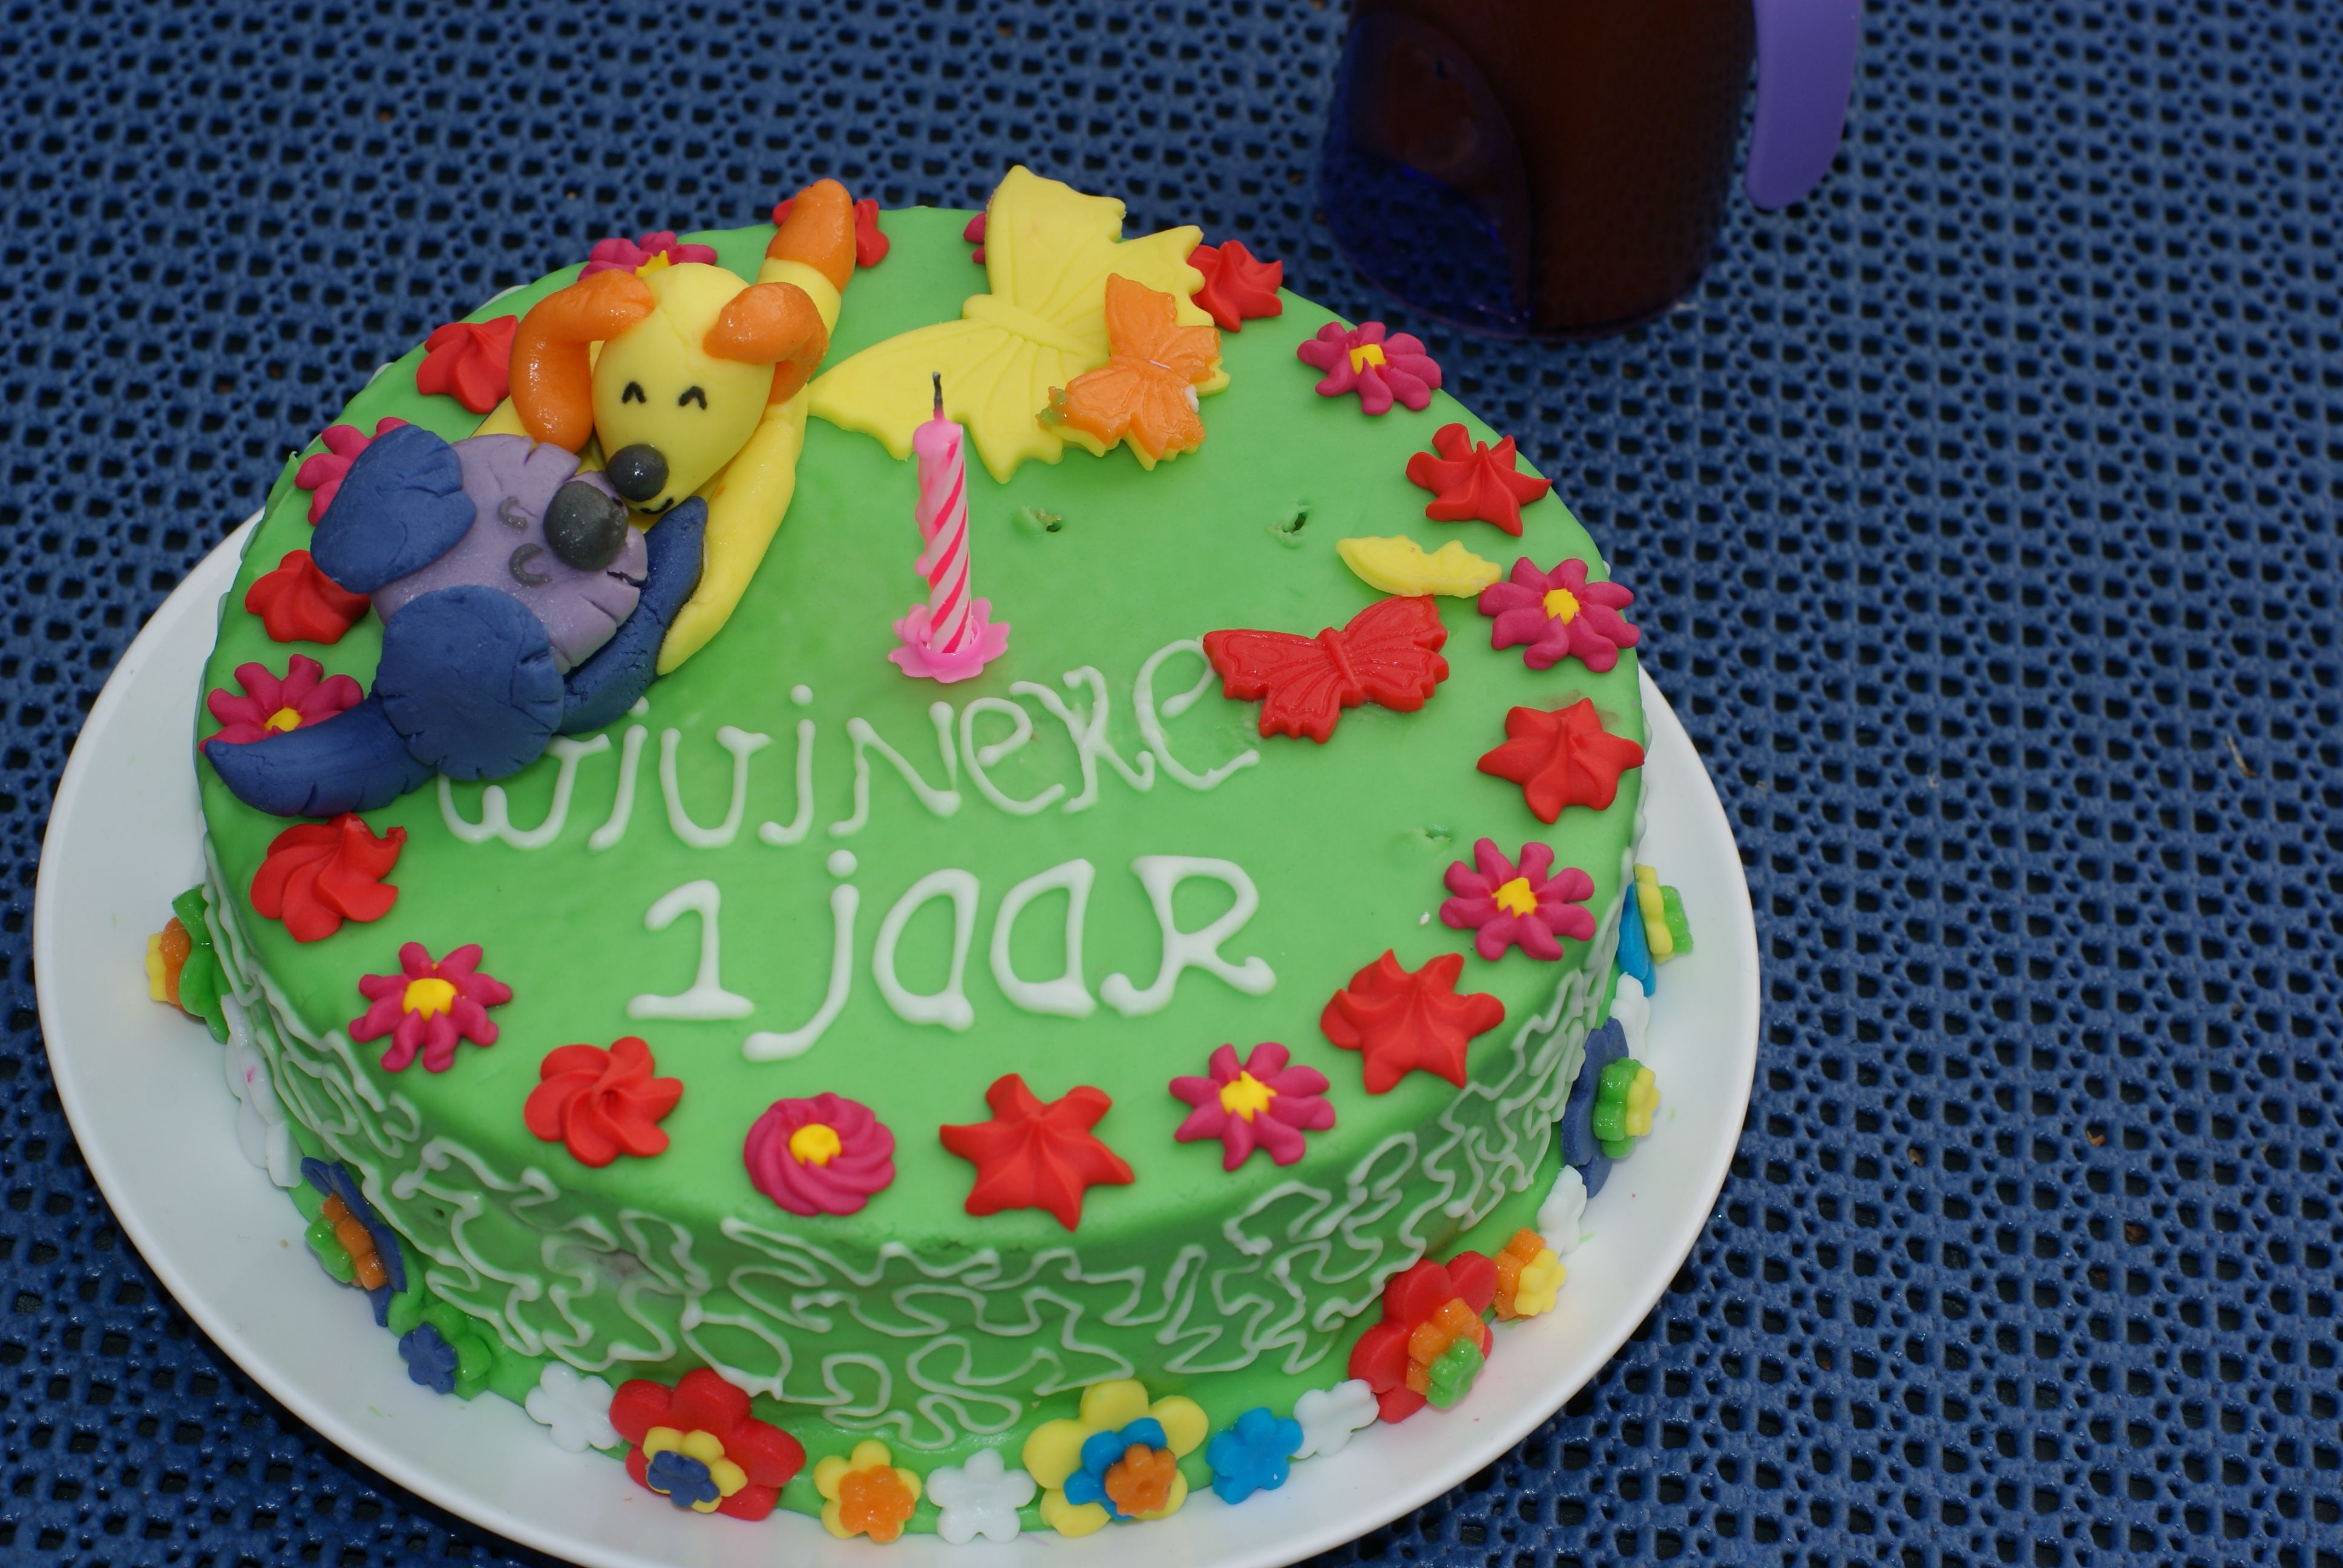 Birthday cake for 1 year old girl